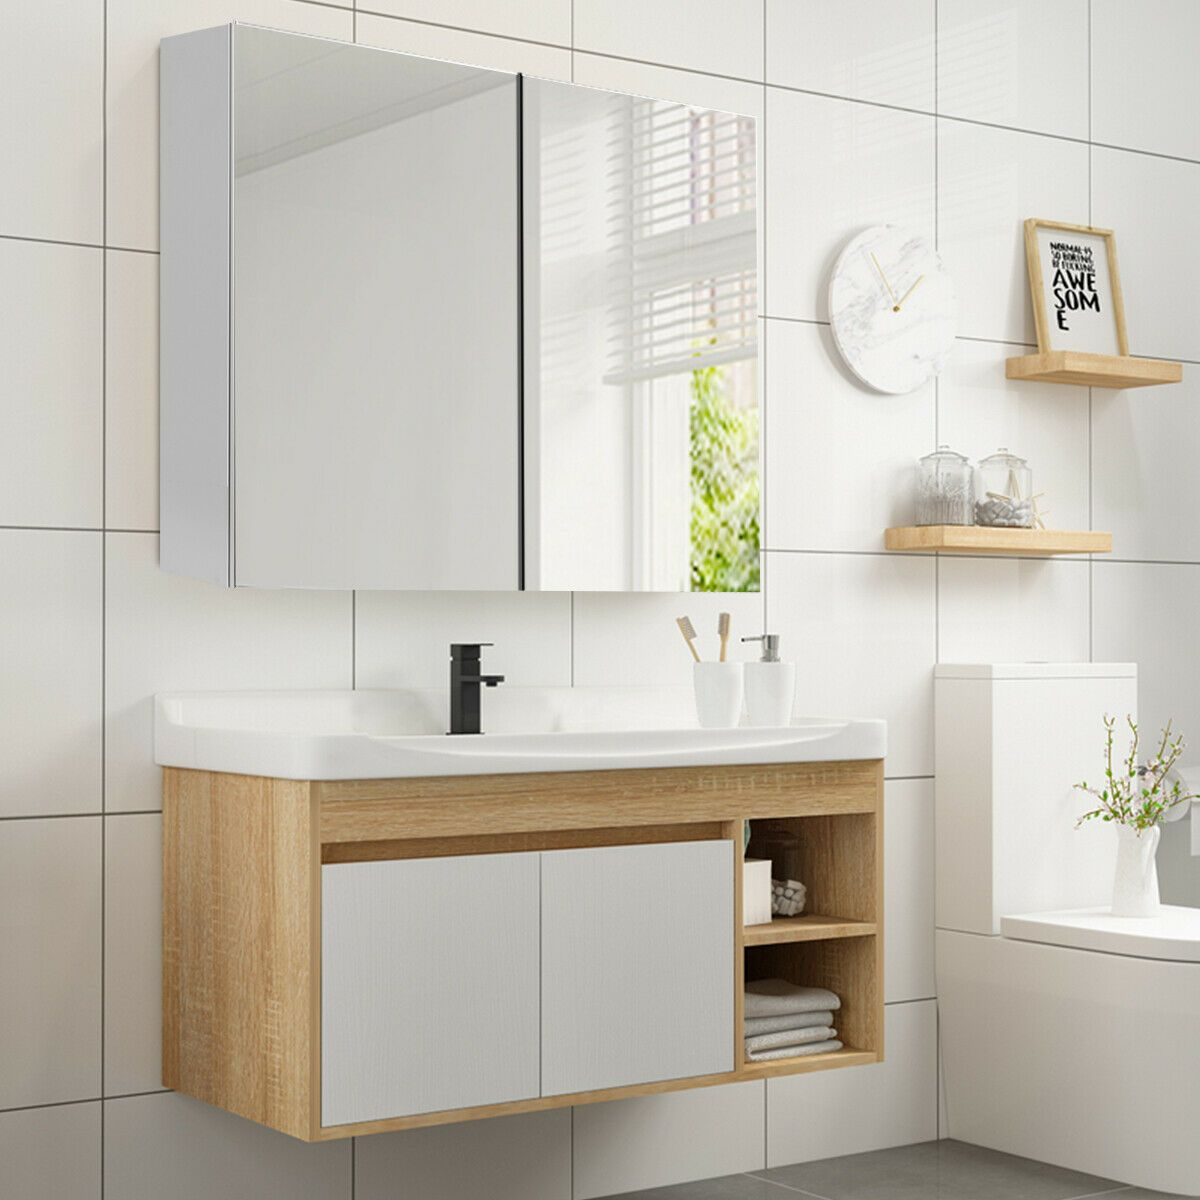 24 Wide Wall Mount Mirrored Medicine Storage Cabinet Wall Mounted Bathroom Cabinets Adjustable Shelving Wall Mounted Mirror